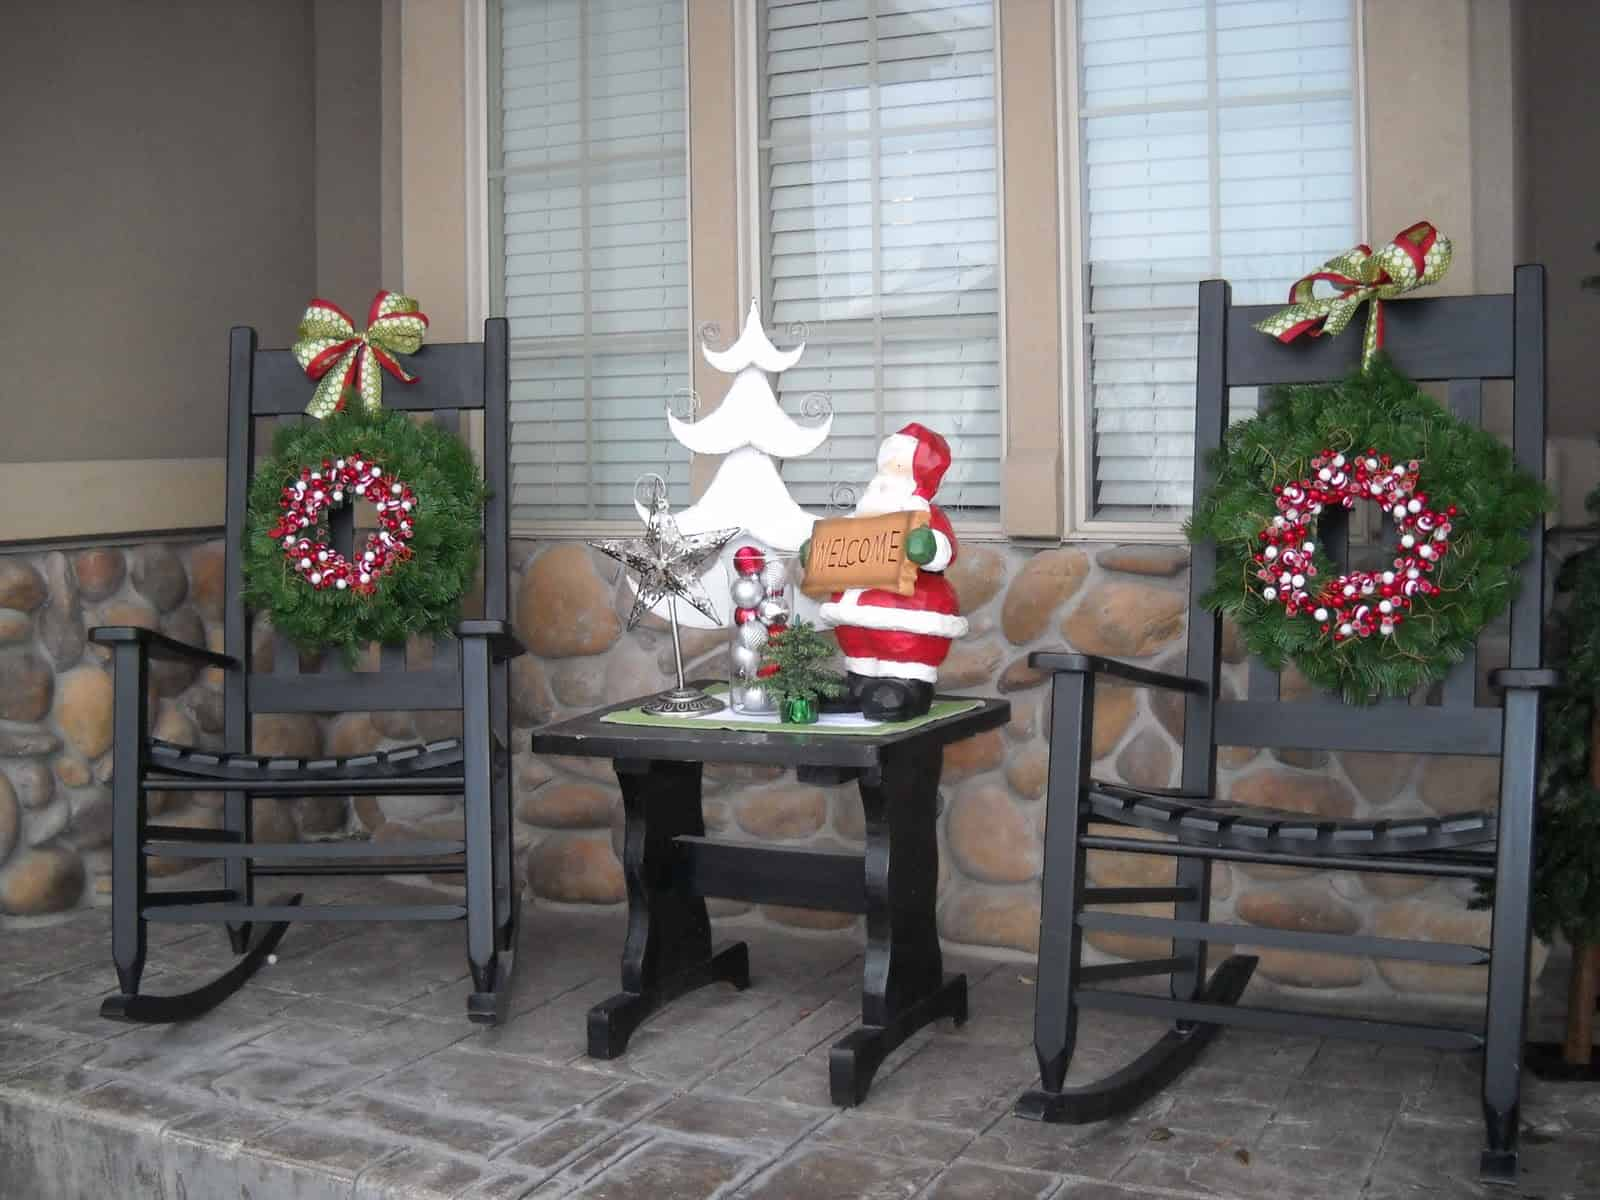 Country Christmas Decor Outside : Country ideas for outdoor christmas d?cor